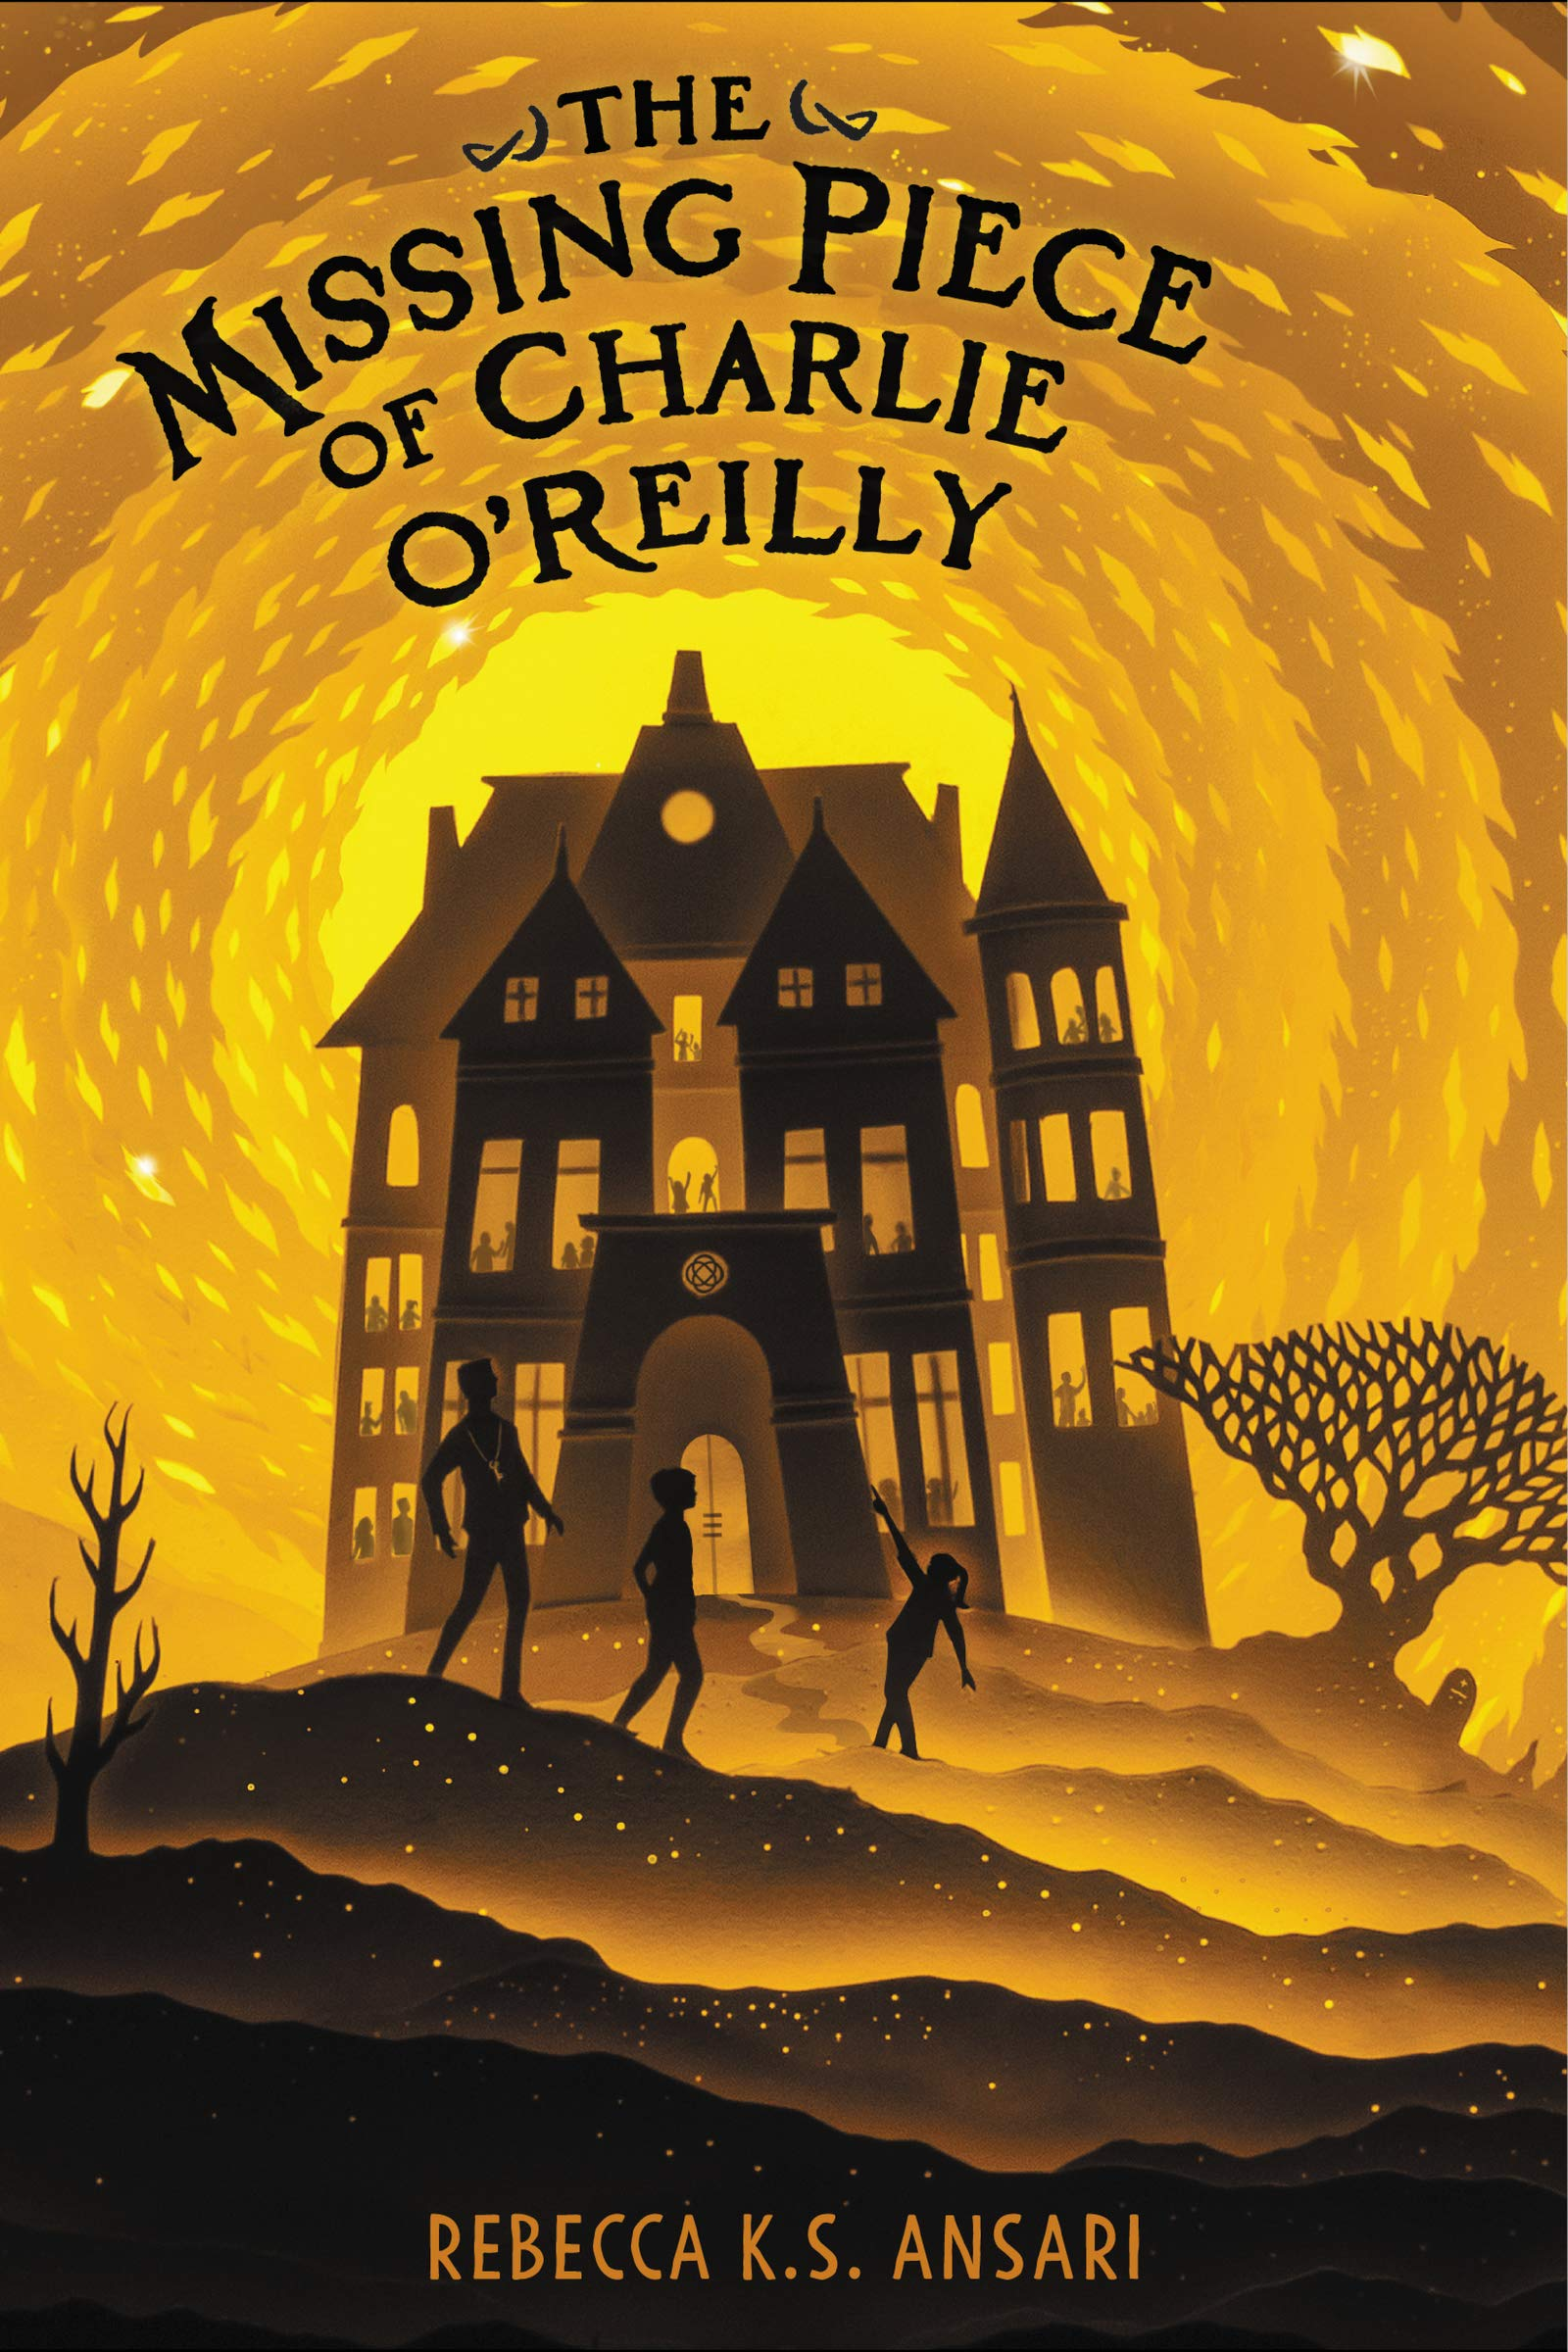 Middle Grade Book Club: The Missing Piece of Charlie O'Reilly